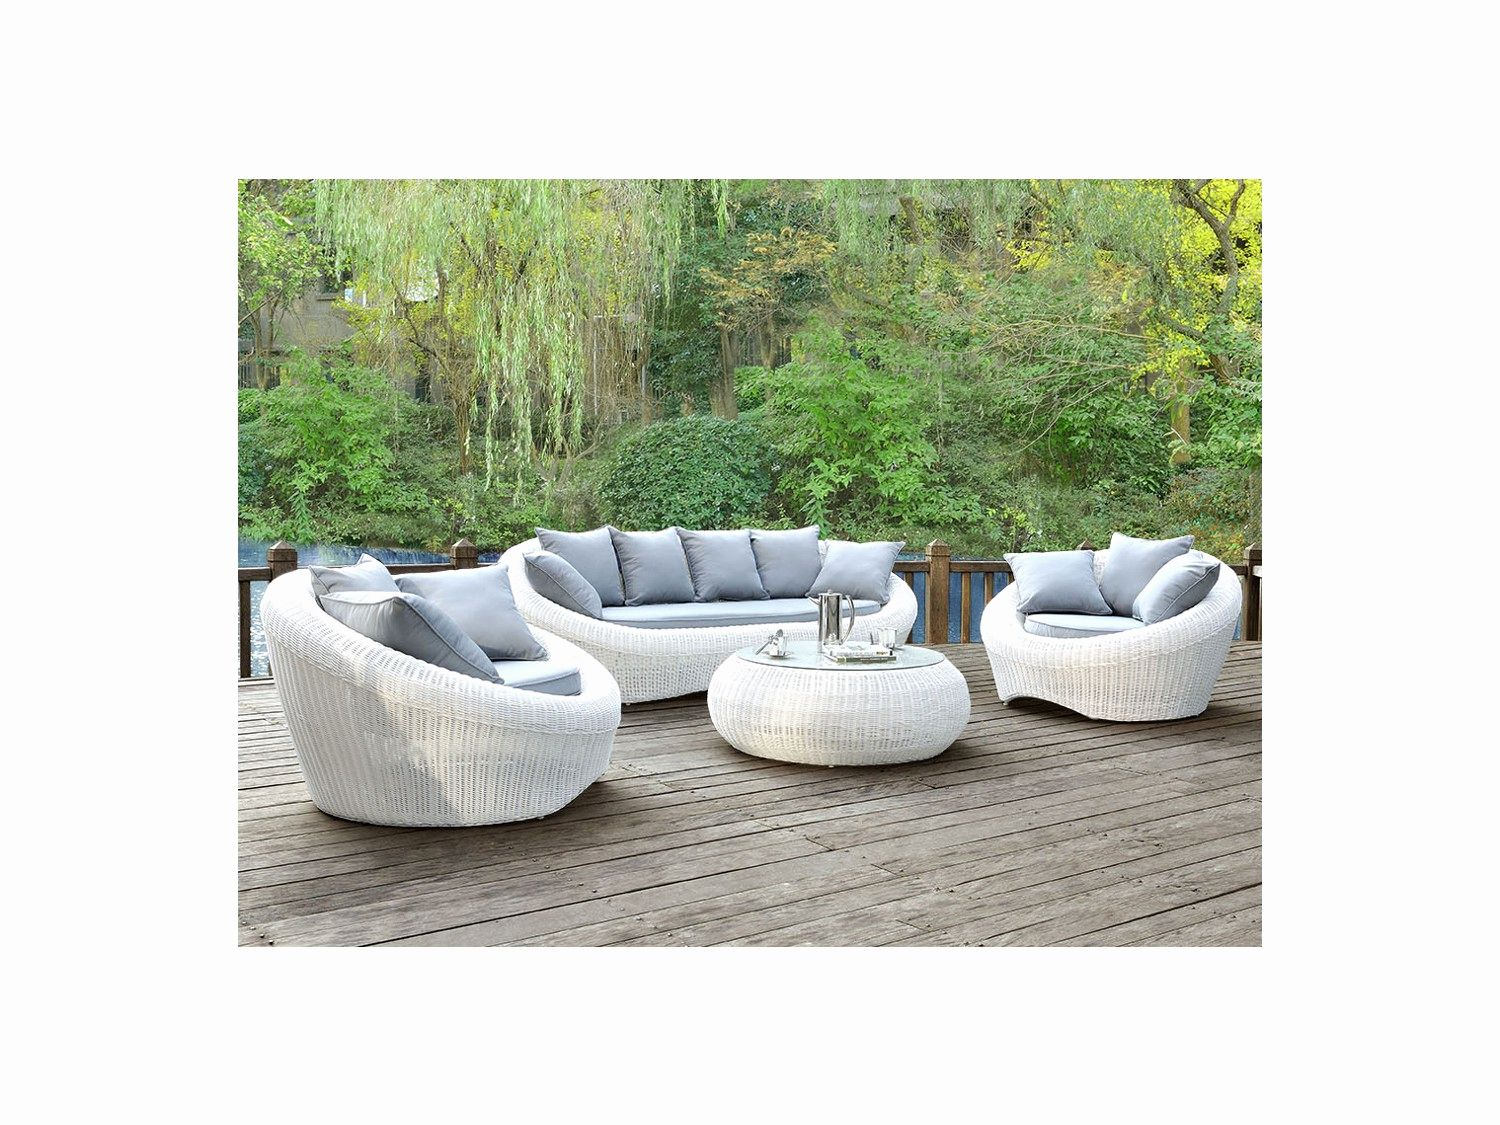 Mobilier Jardin Quimperle | Ideal Magasin Meuble Quimper 63 ...